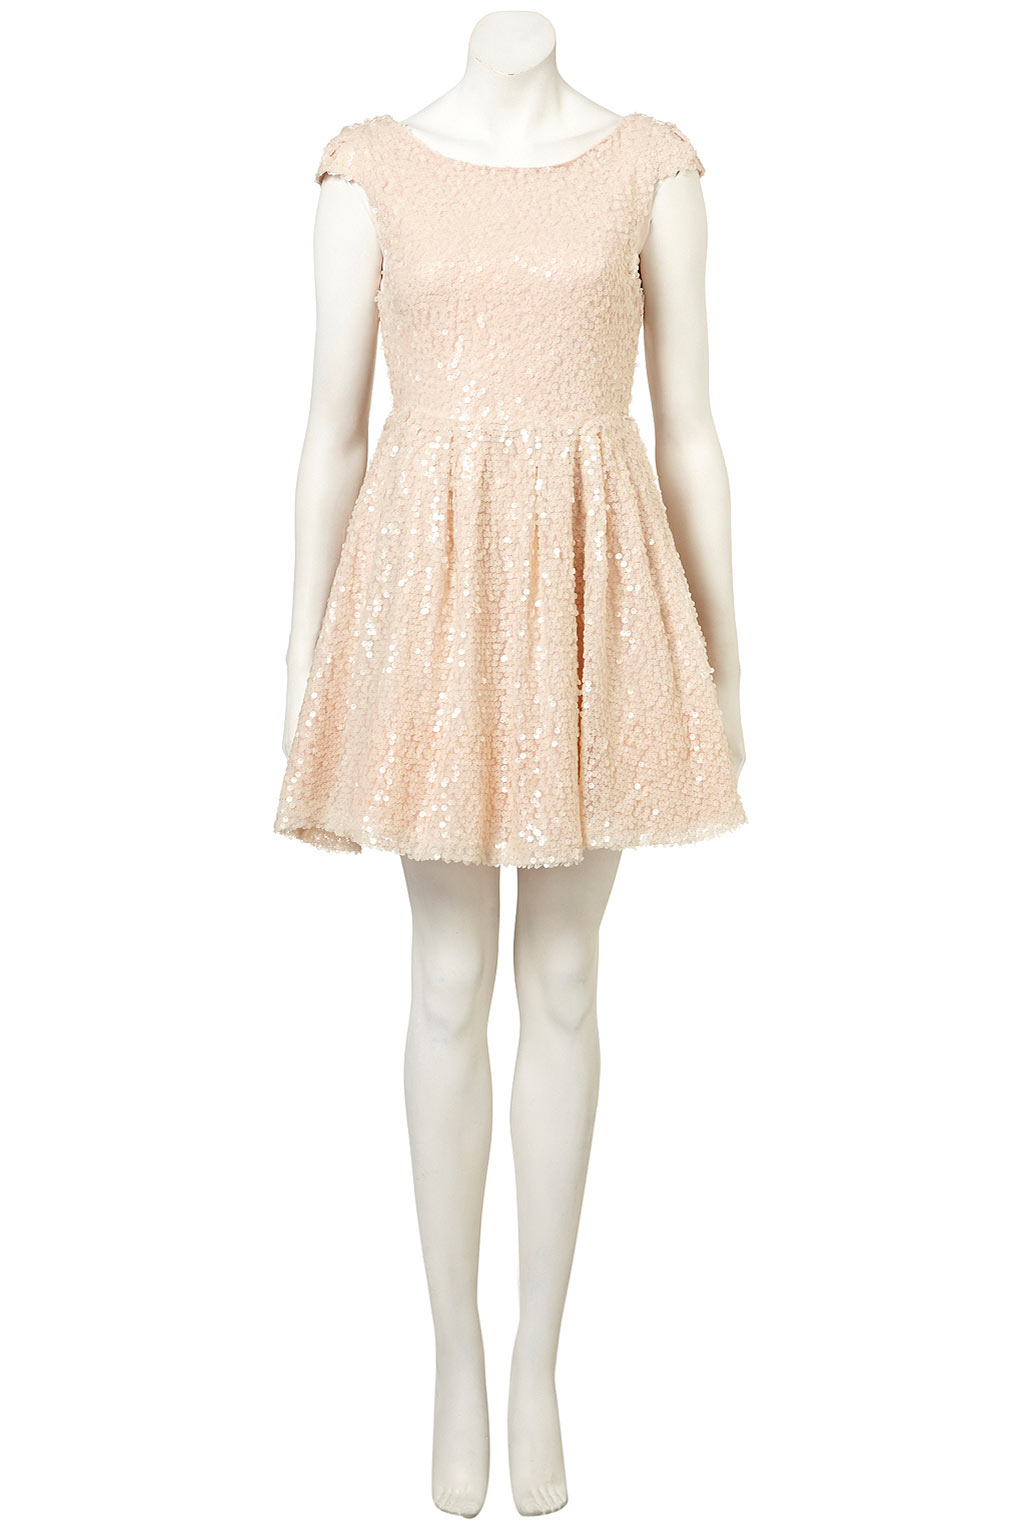 Topshop All Over Sequin Prom Dress By Dress Up in Natural - Lyst